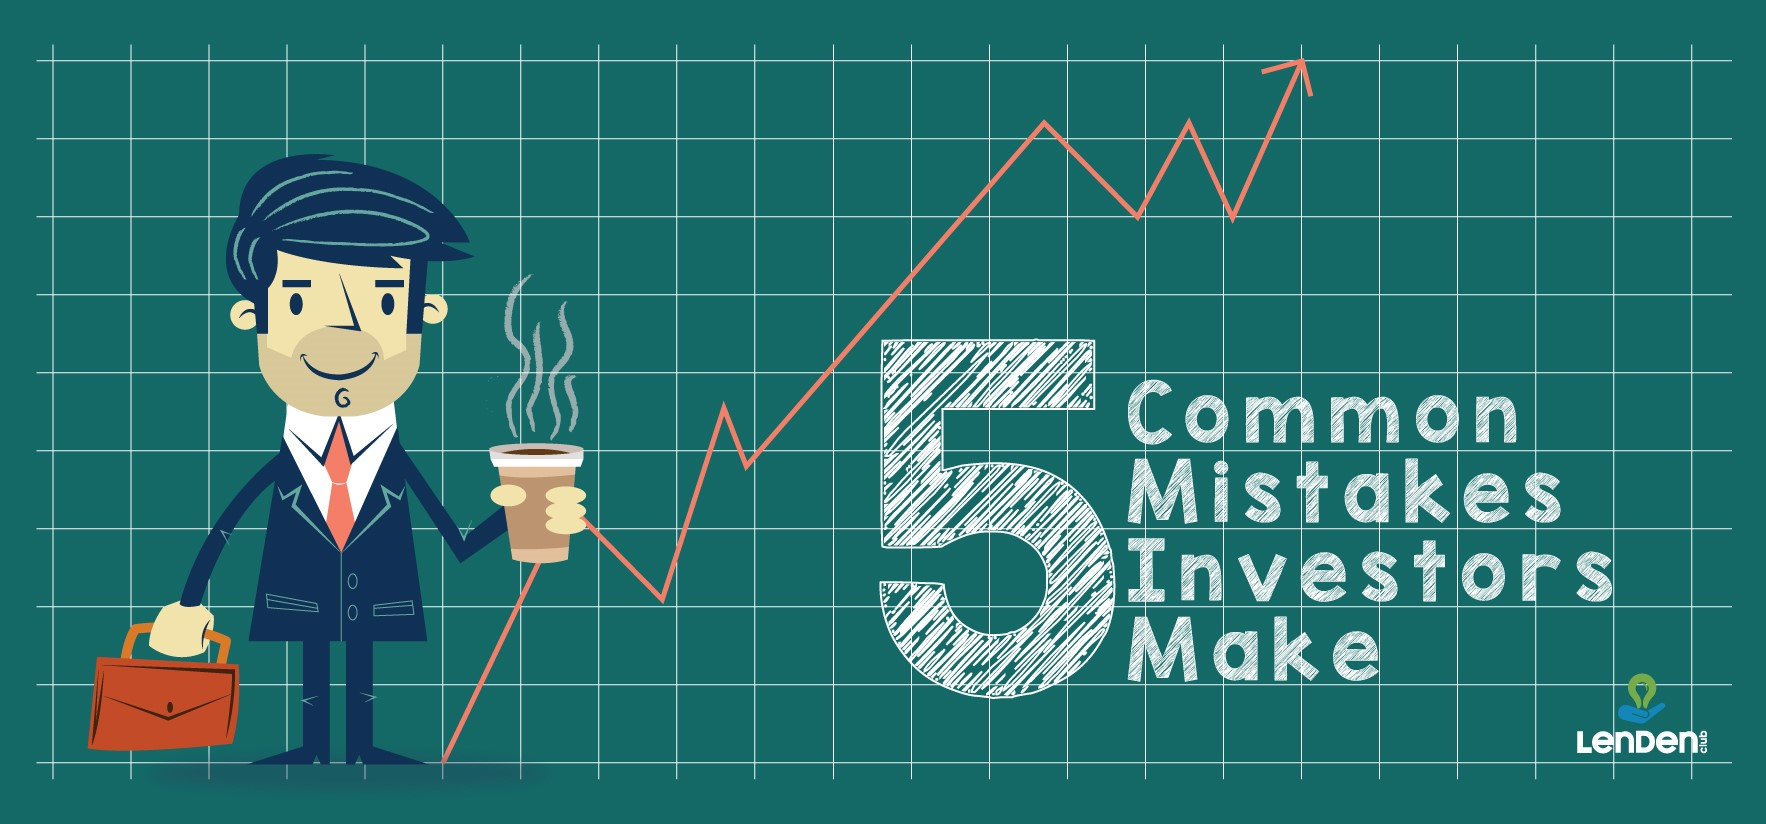 5 Common Mistakes Investors Make